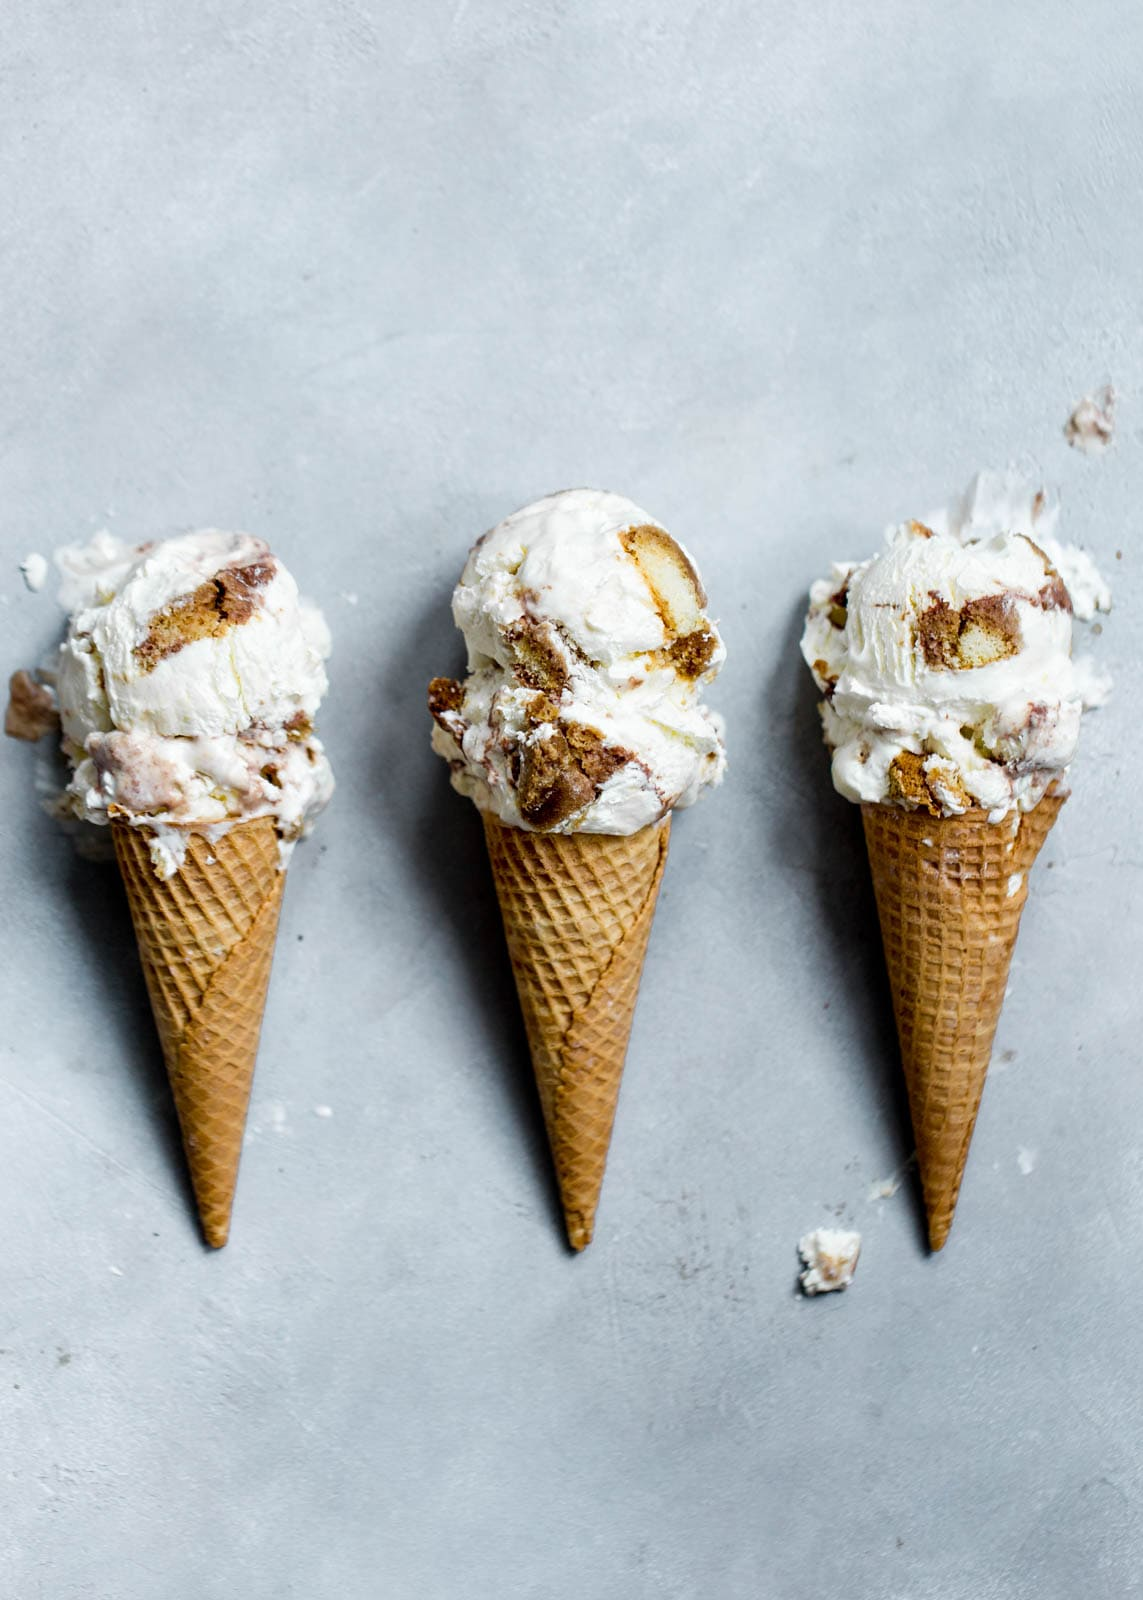 Tiramisu Ice Cream in cones